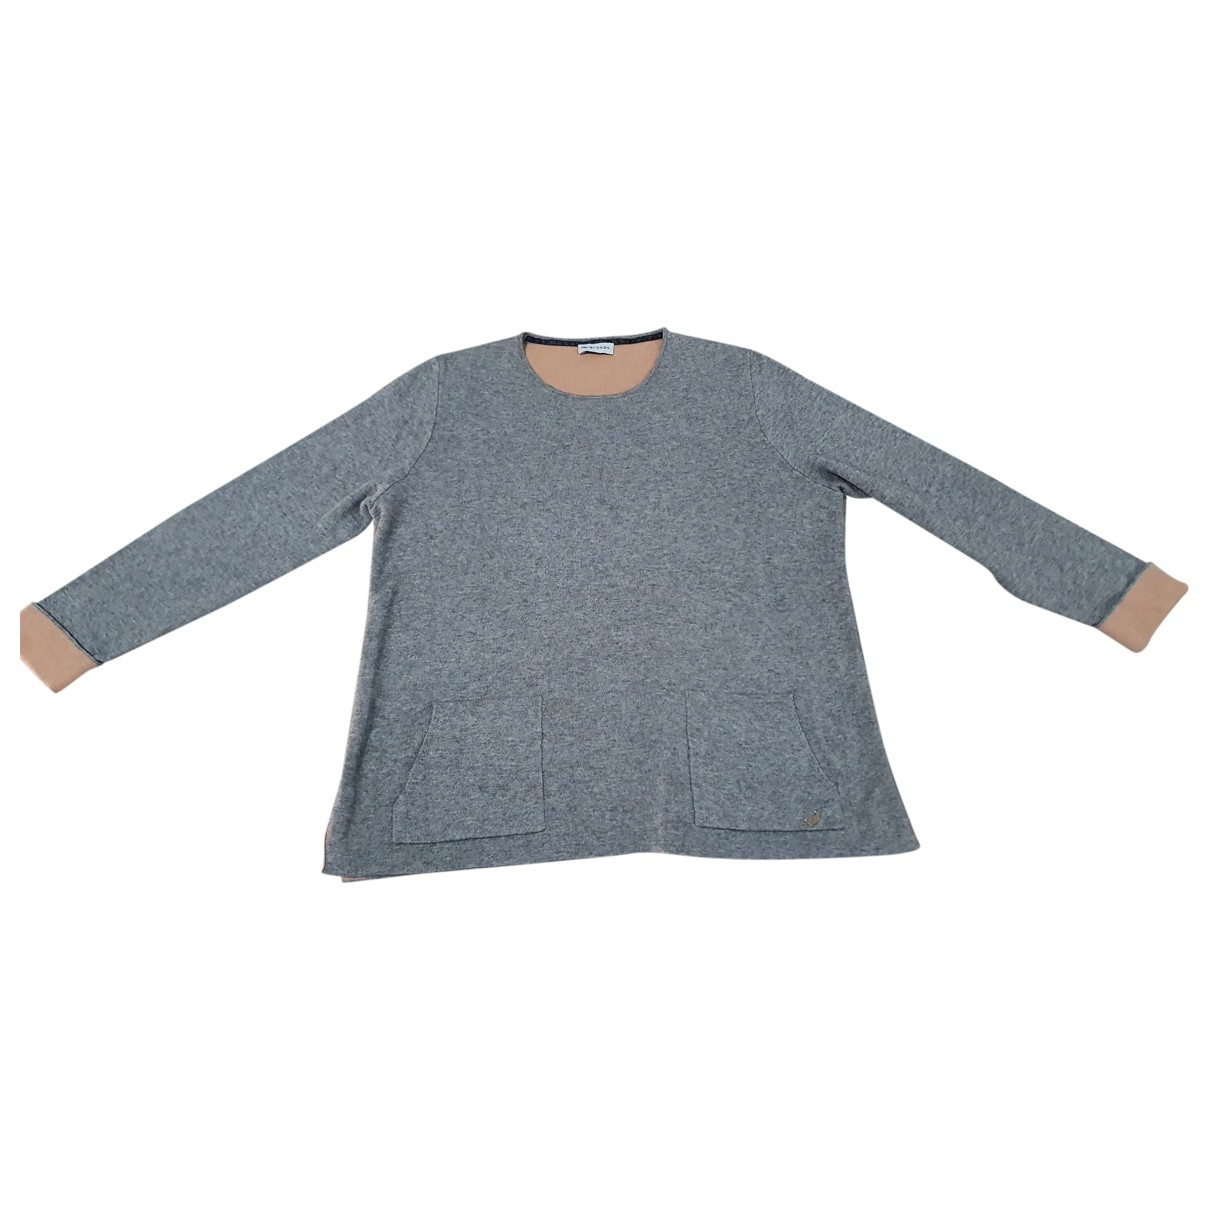 Krizia \N Grey Knitwear for Women L International